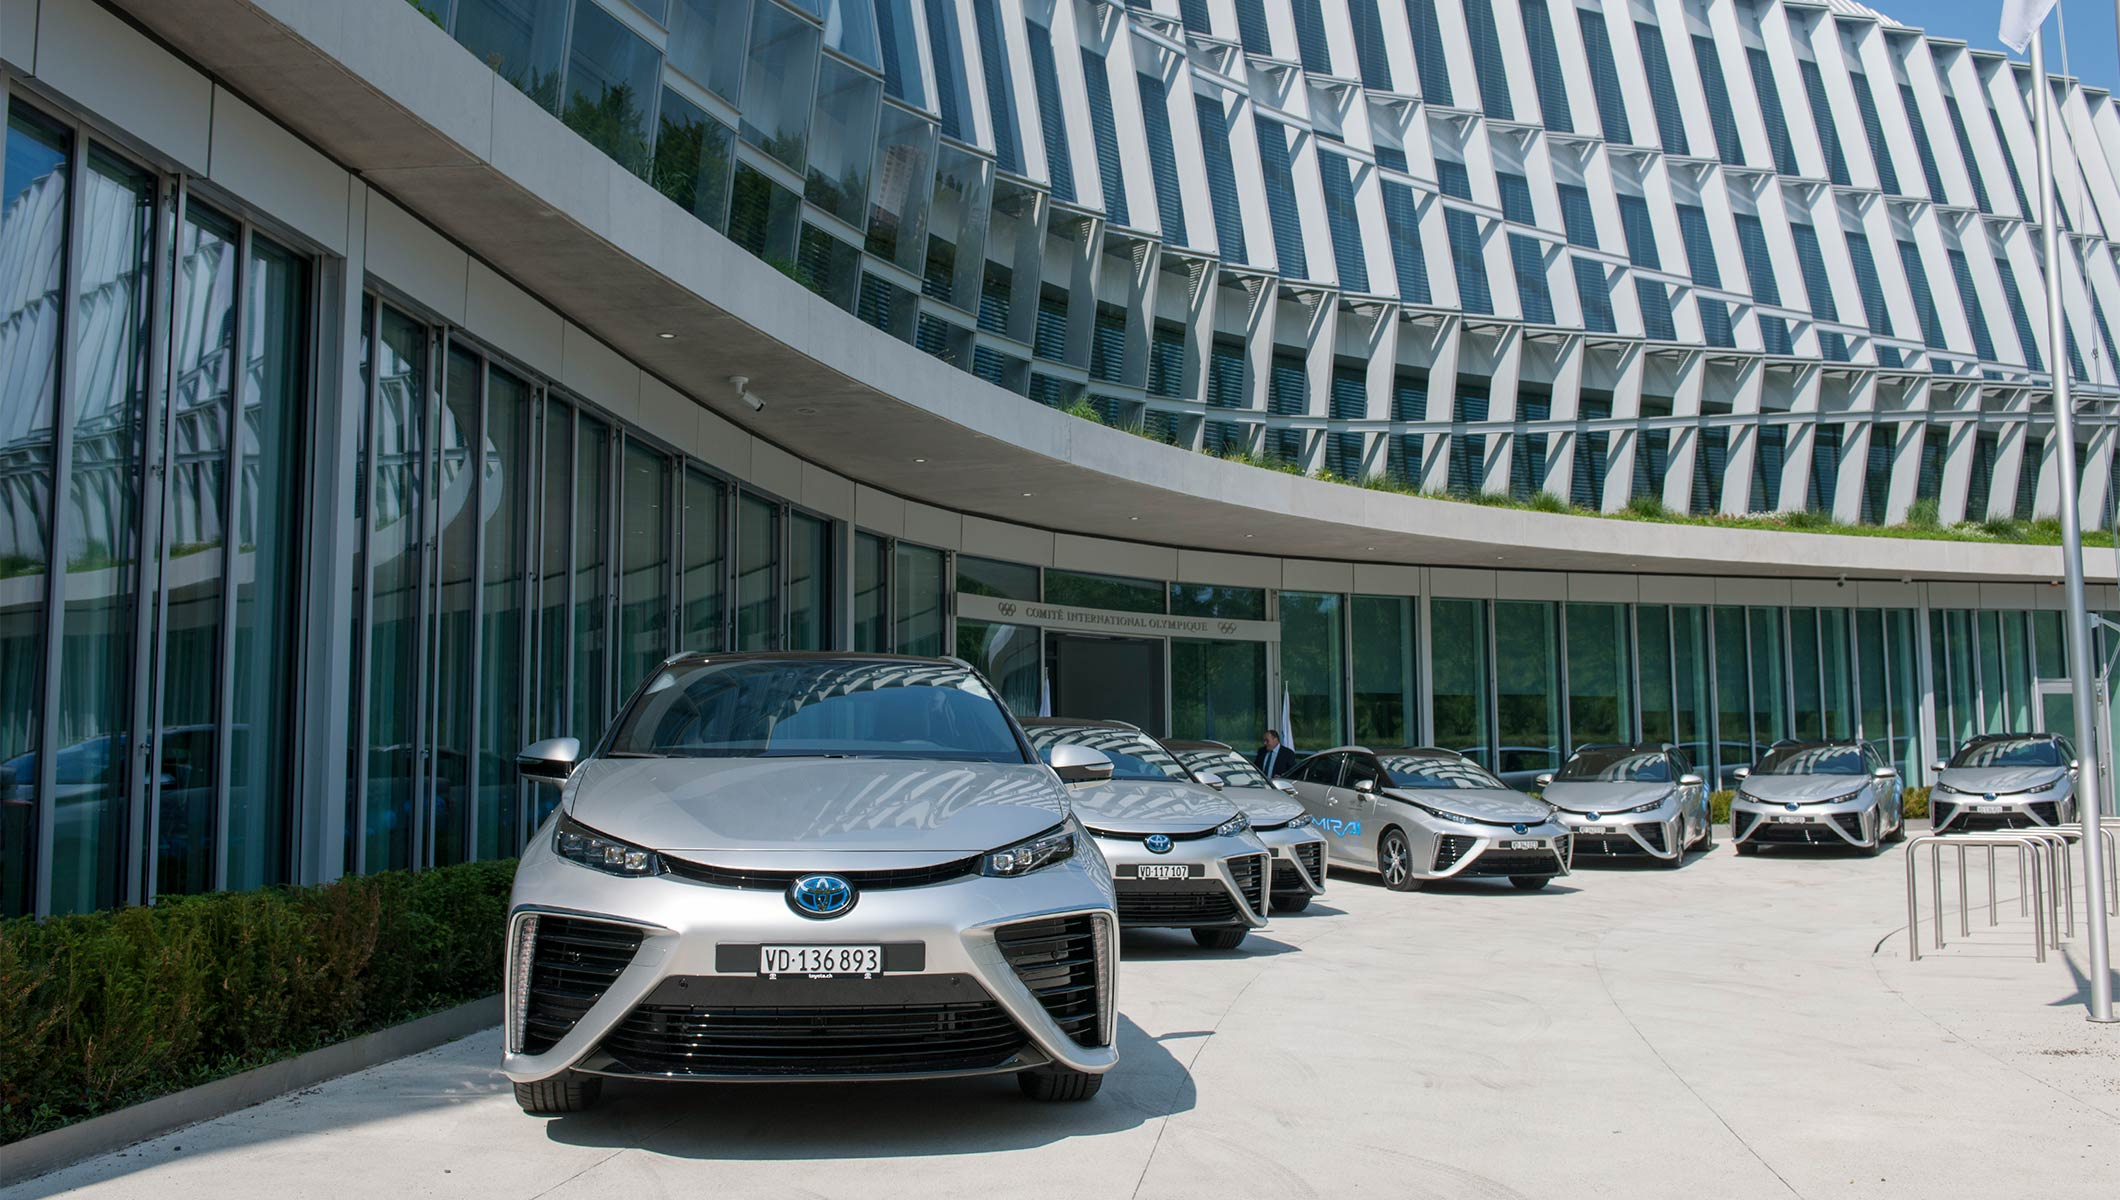 IOC receives delivery of zero-emission hydrogen fuel cell vehicles